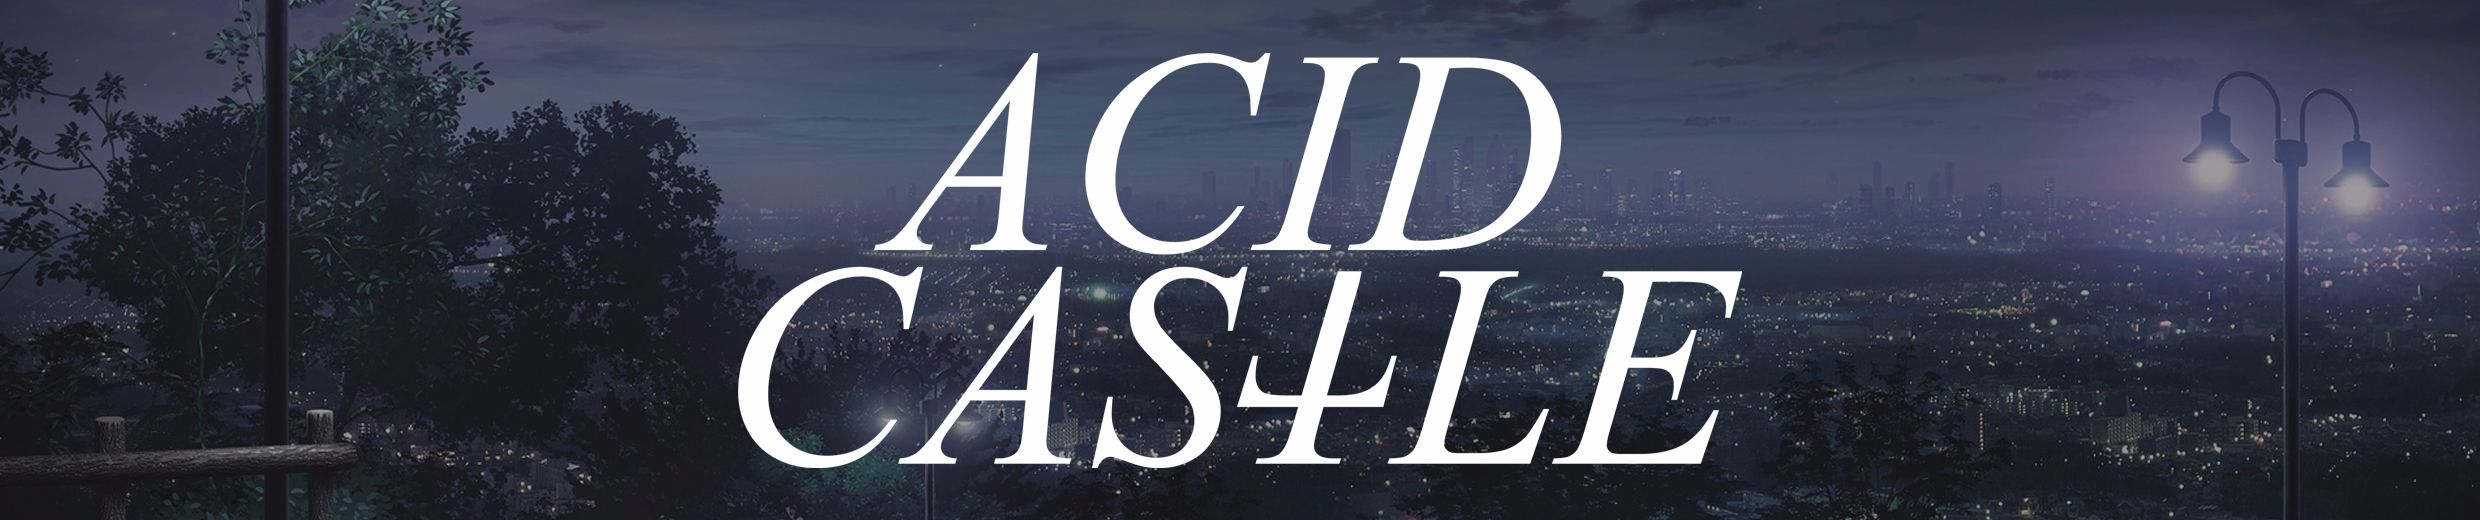 Acid castle free listening on soundcloud malvernweather